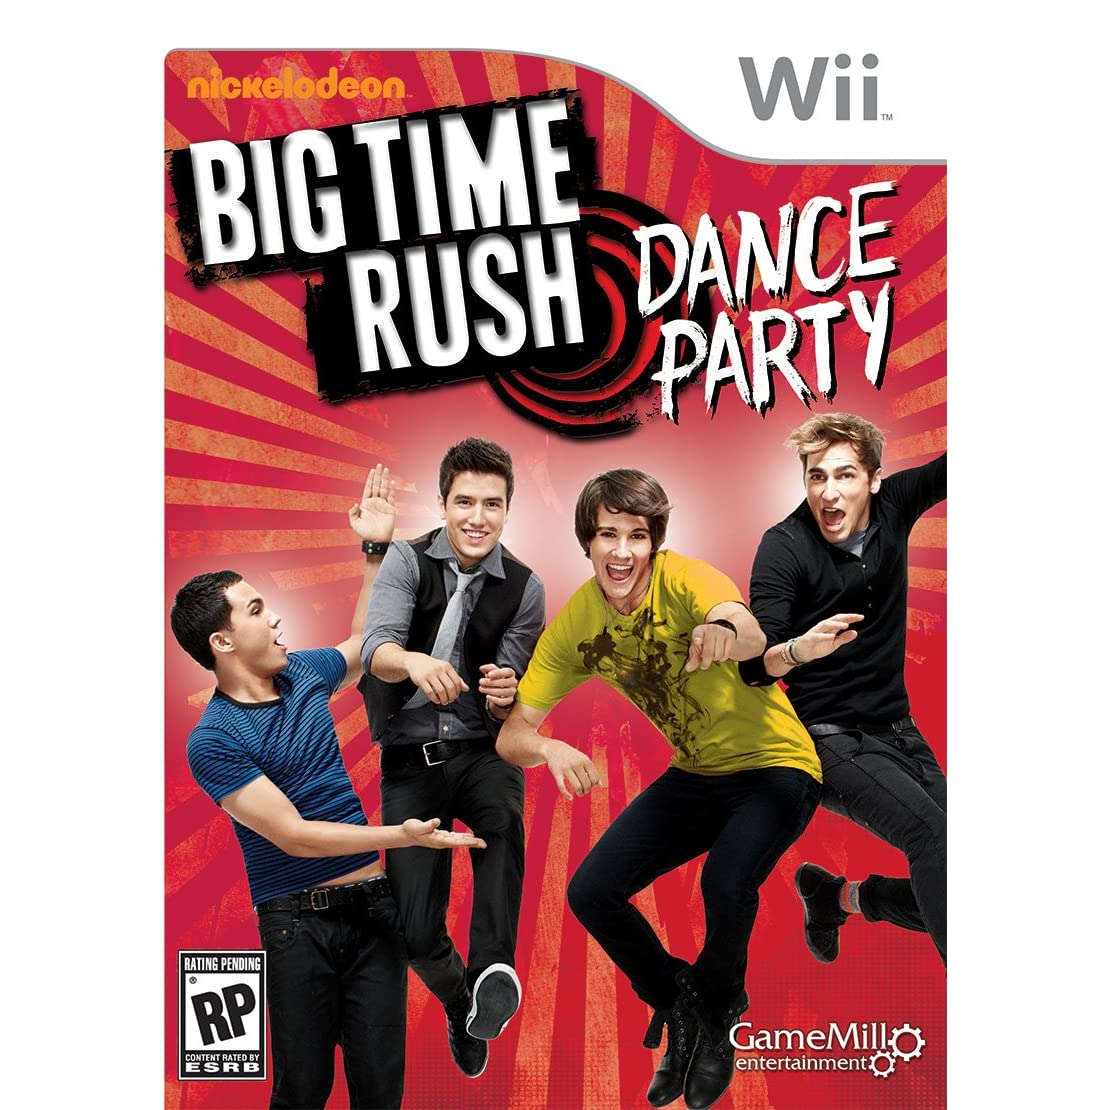 Big Time Rush Dance Party & Big Time Rush Backstage Pass